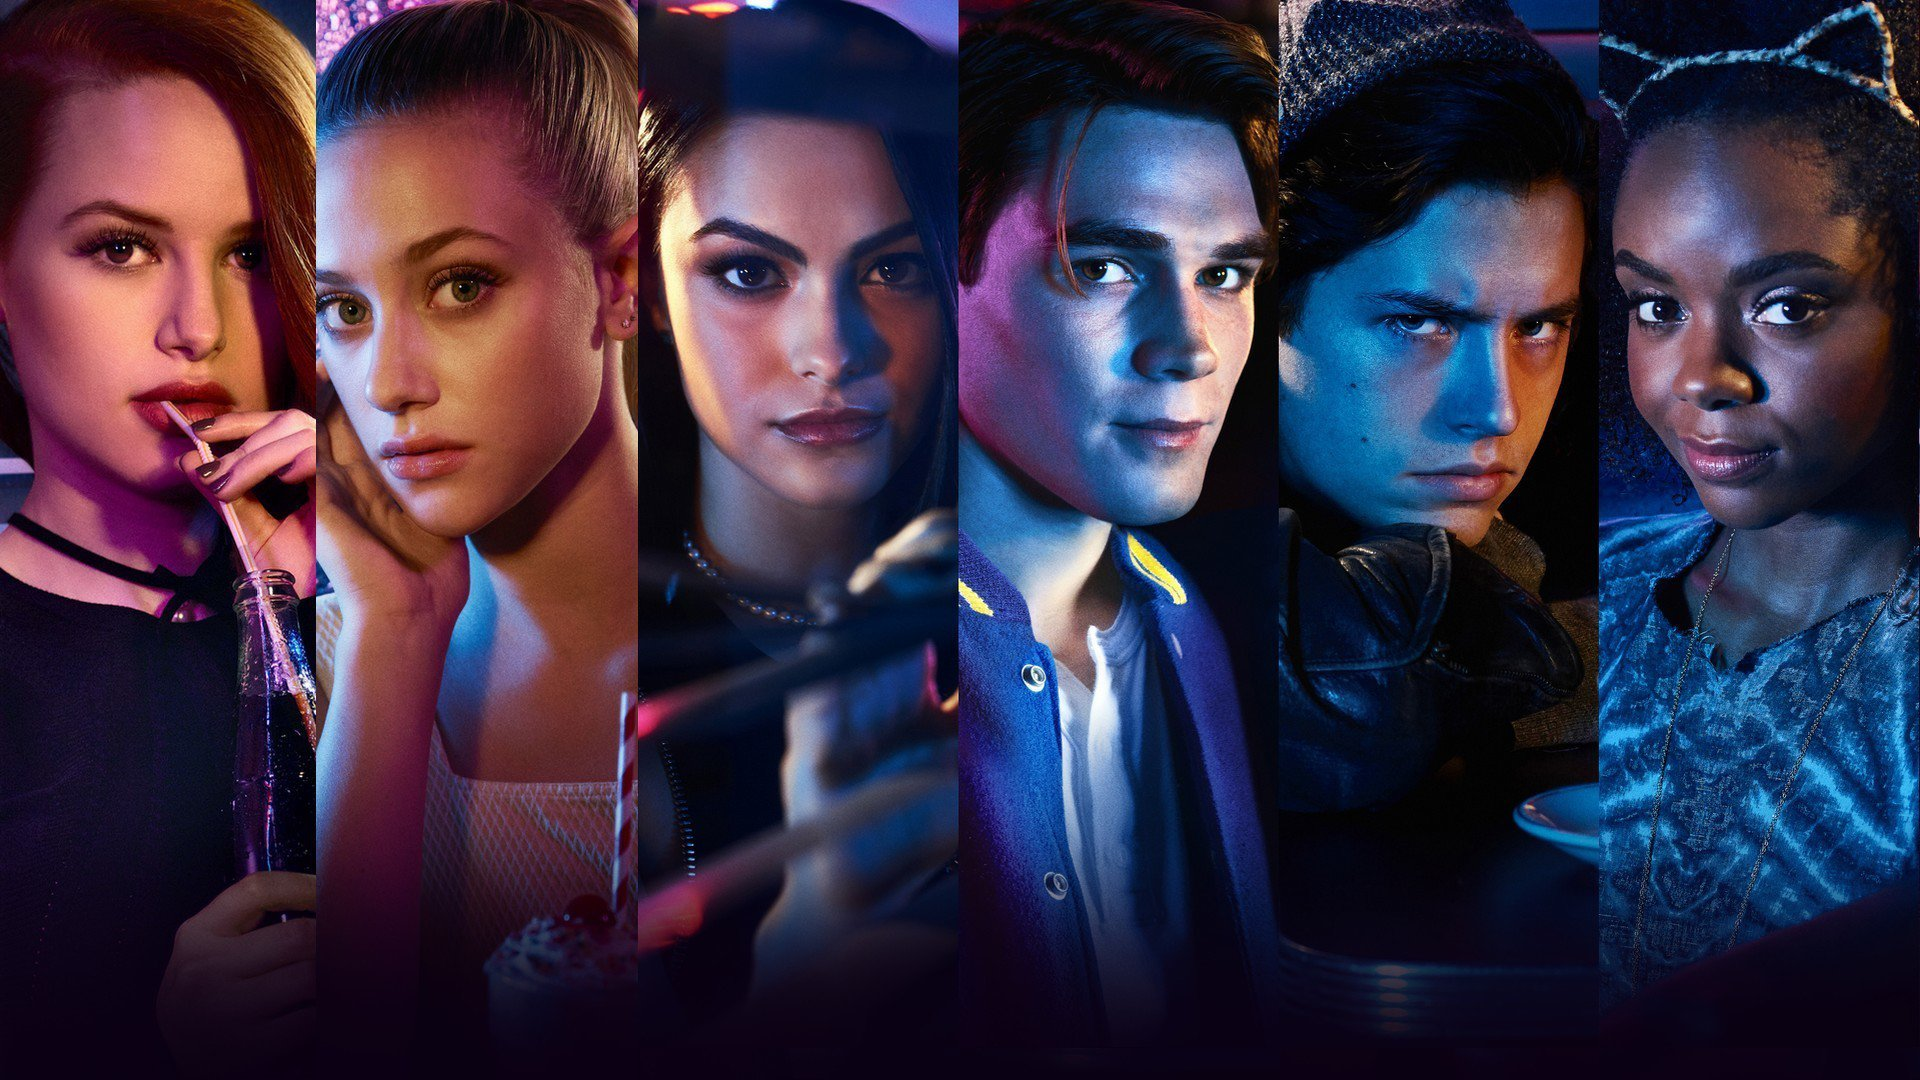 Riverdale Wallpaper: Backgrounds - Wallpaper Abyss